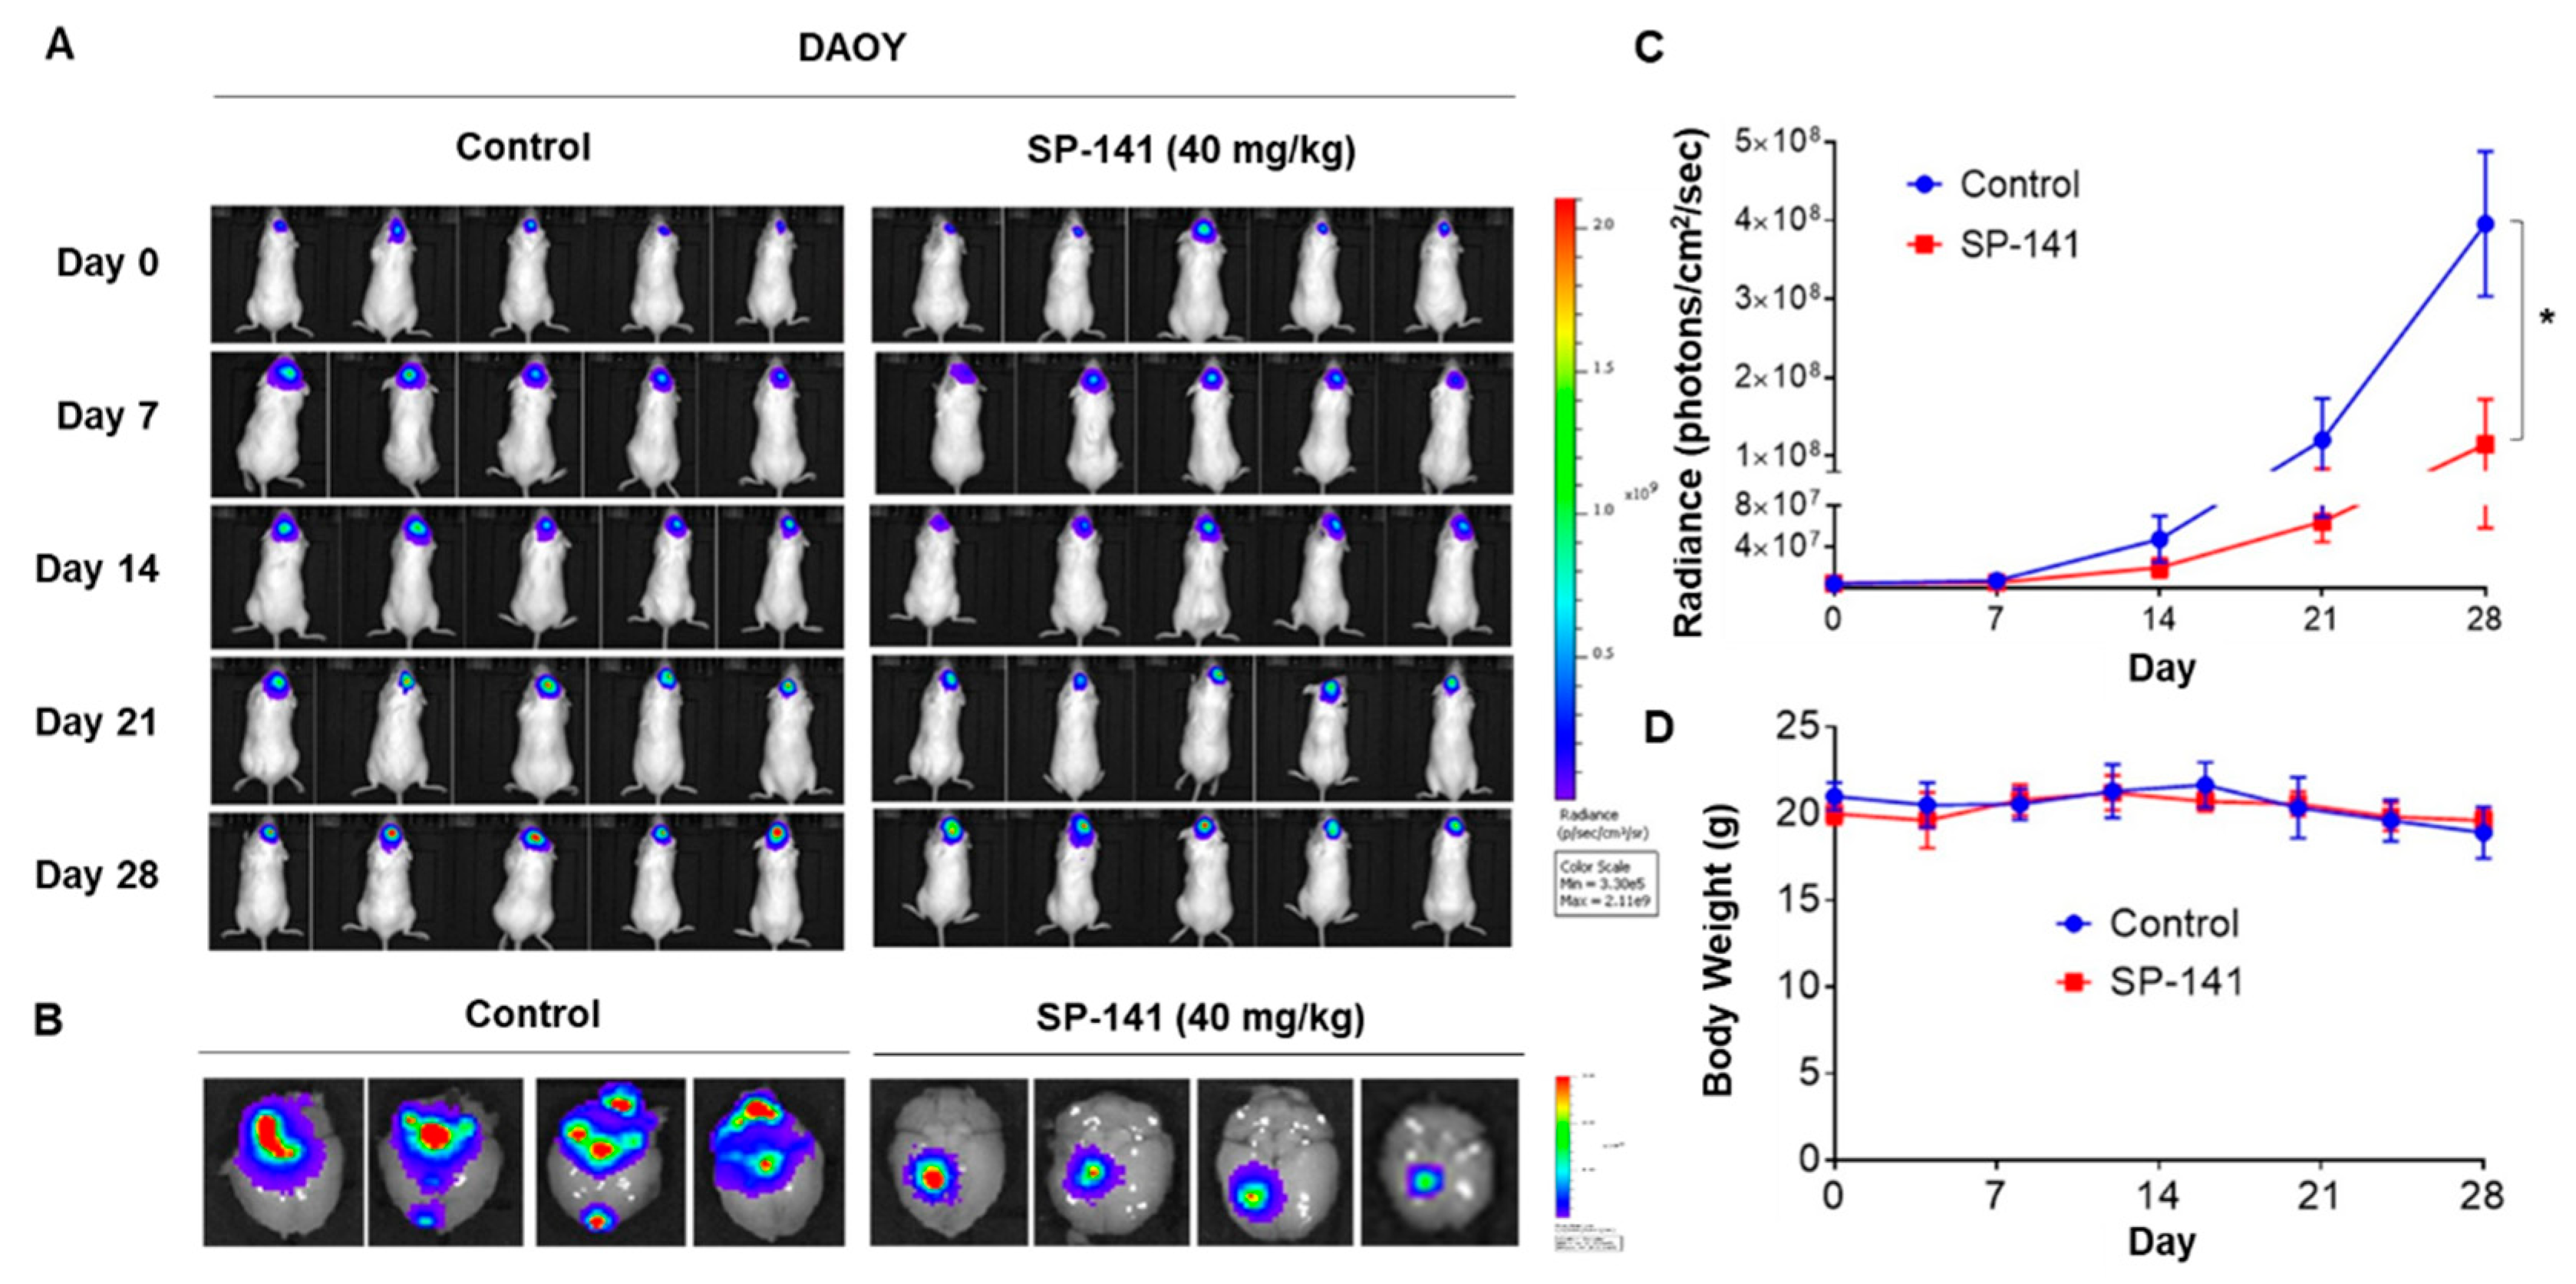 Cells Free Full Text Targeted Brain Tumor Therapy By Inhibiting The Mdm2 Oncogene In Vitro And In Vivo Antitumor Activity And Mechanism Of Action Html